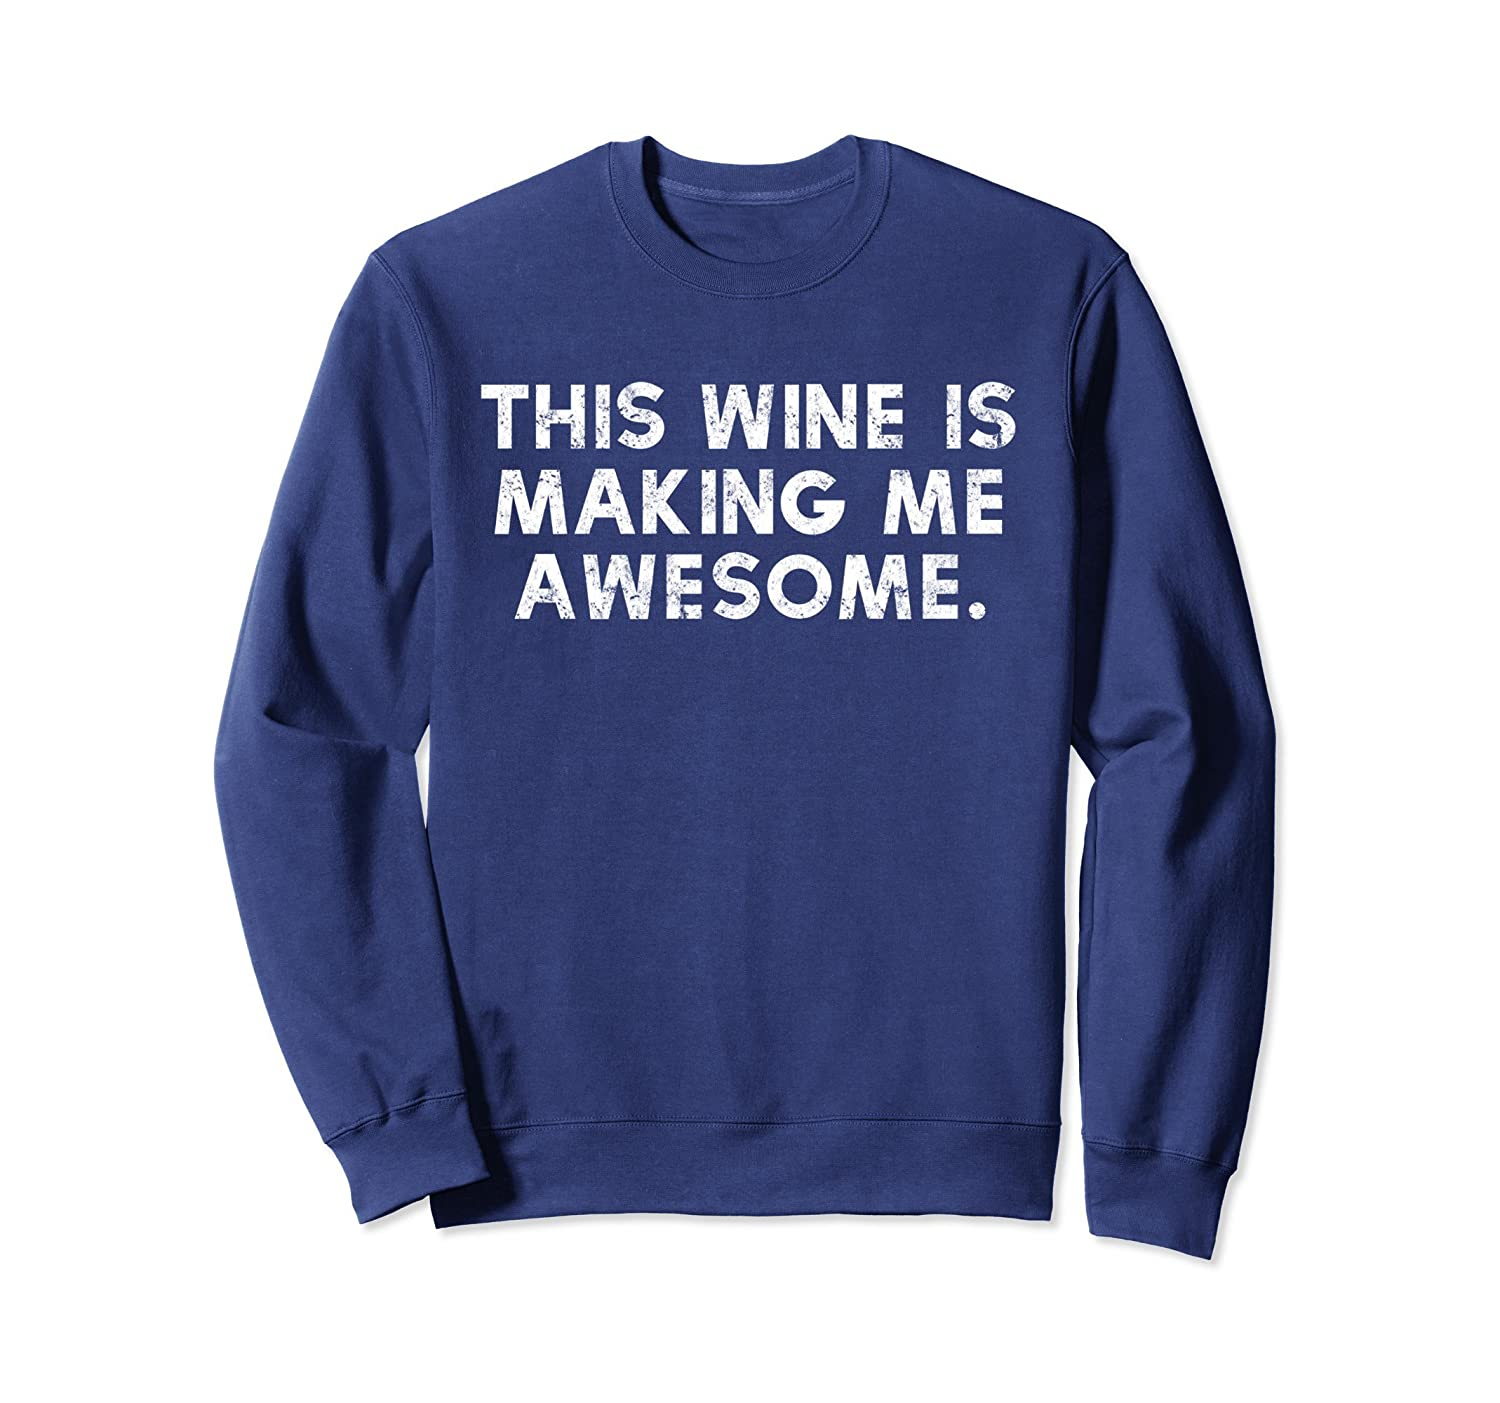 5a79179261f6 This Wine Is Making Me Awesome Crewneck Sweatshirt-ah my shirt one gift